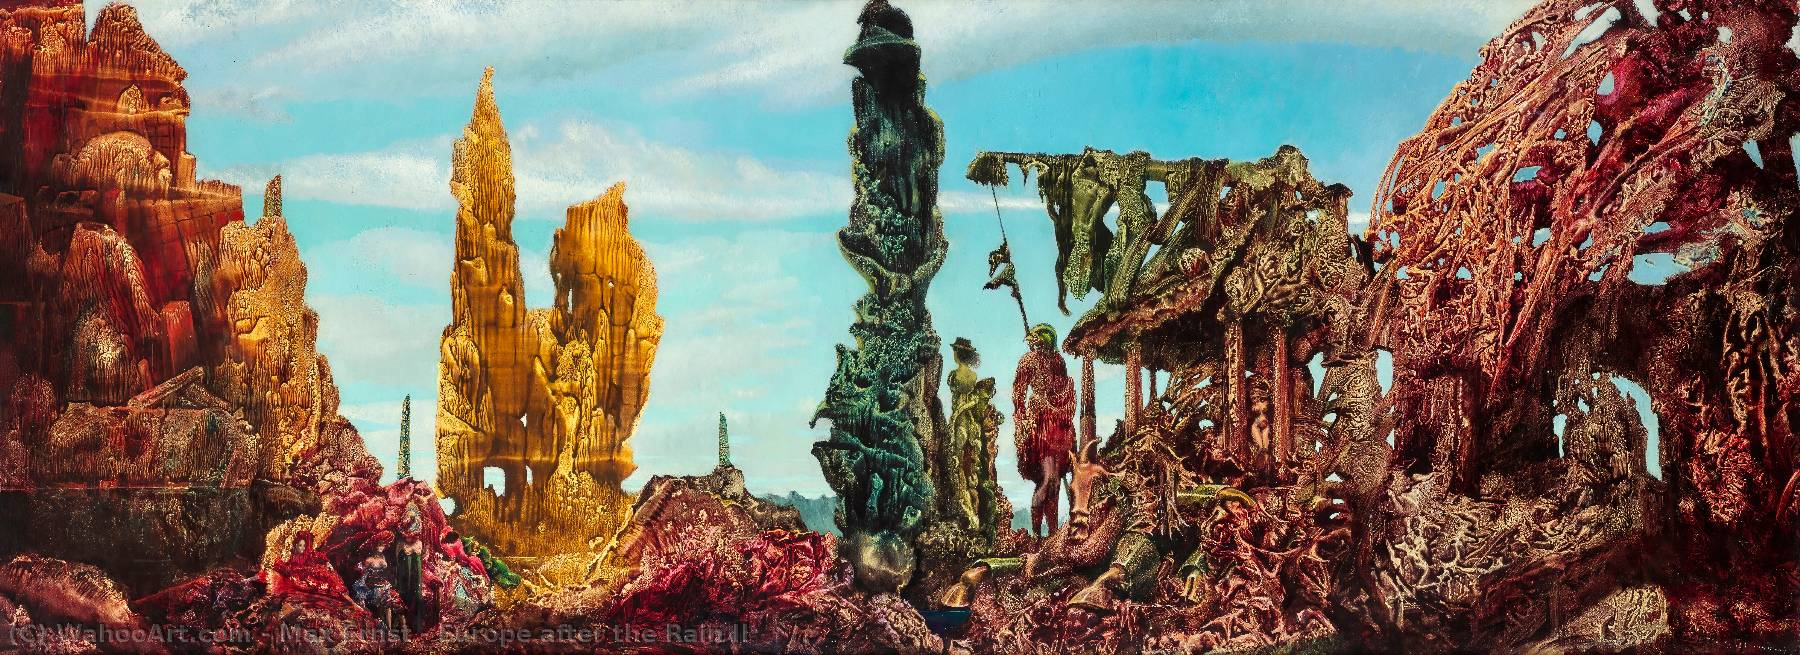 | Europe after the Rain II by Max Ernst | Most-Famous-Paintings.com